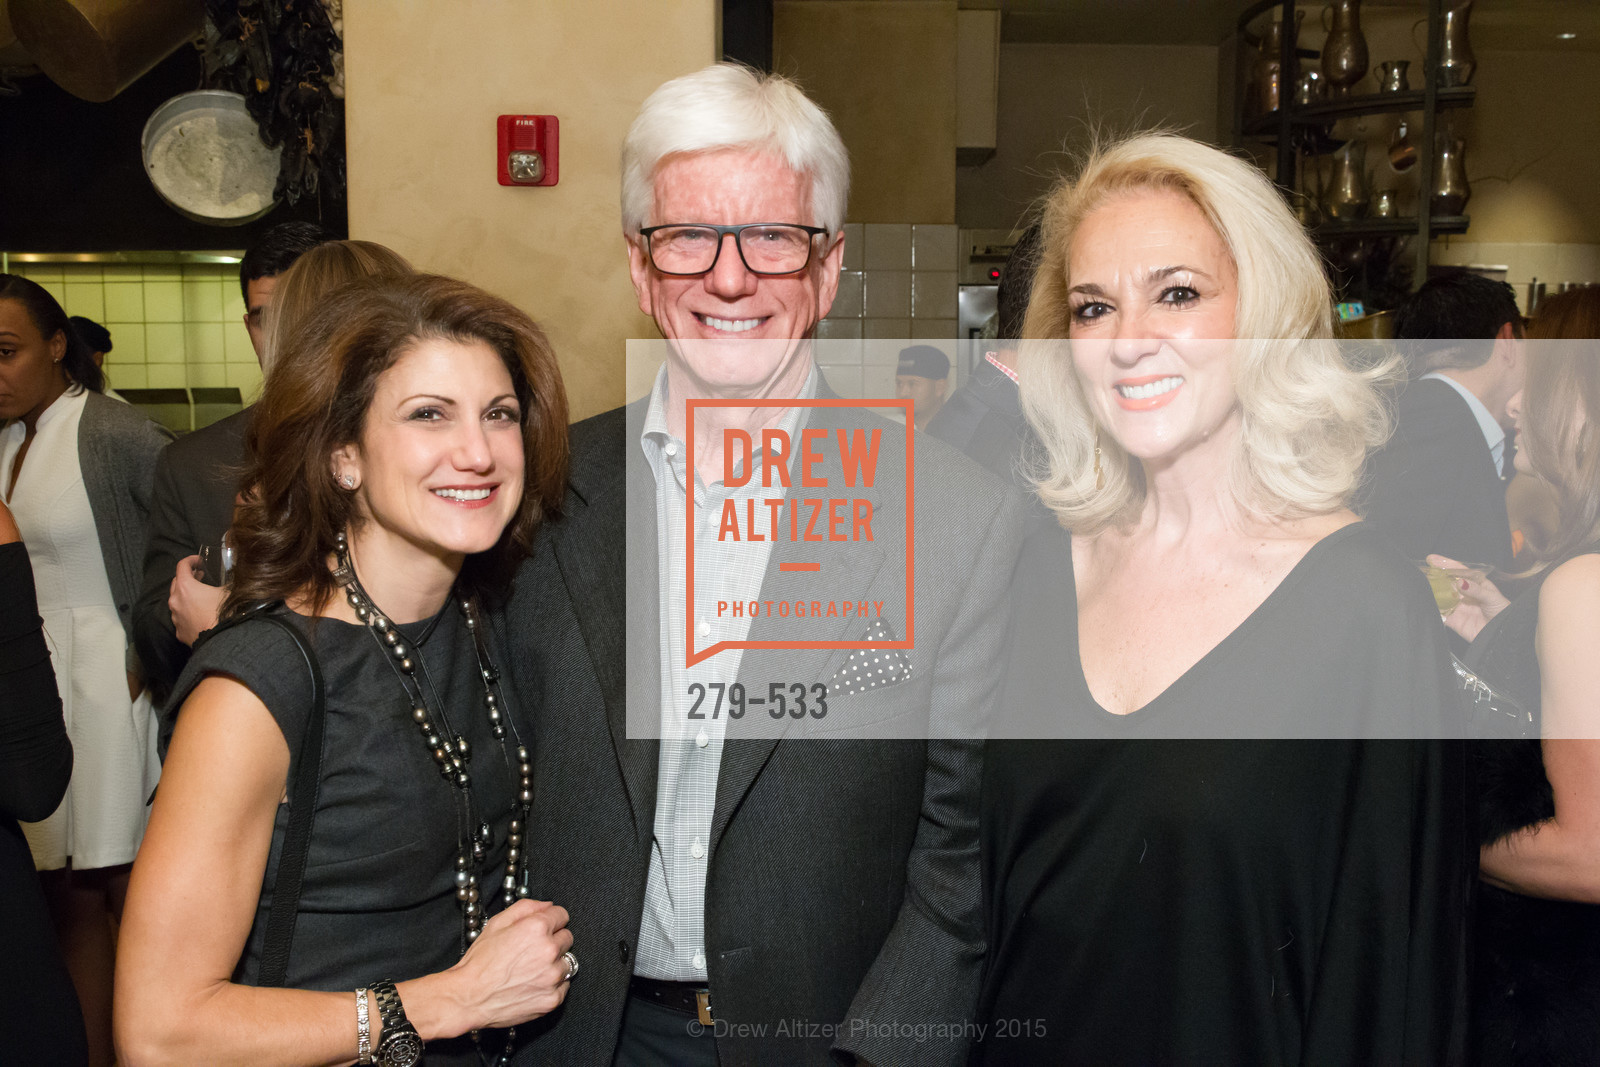 Niki Leondakis, Bob Puccini, Athena Marks, Hellenic Charity Ball Cocktail Reception, Kokkari. 200 Jackson St, San Francisco, CA 94111, November 13th, 2015,Drew Altizer, Drew Altizer Photography, full-service agency, private events, San Francisco photographer, photographer california